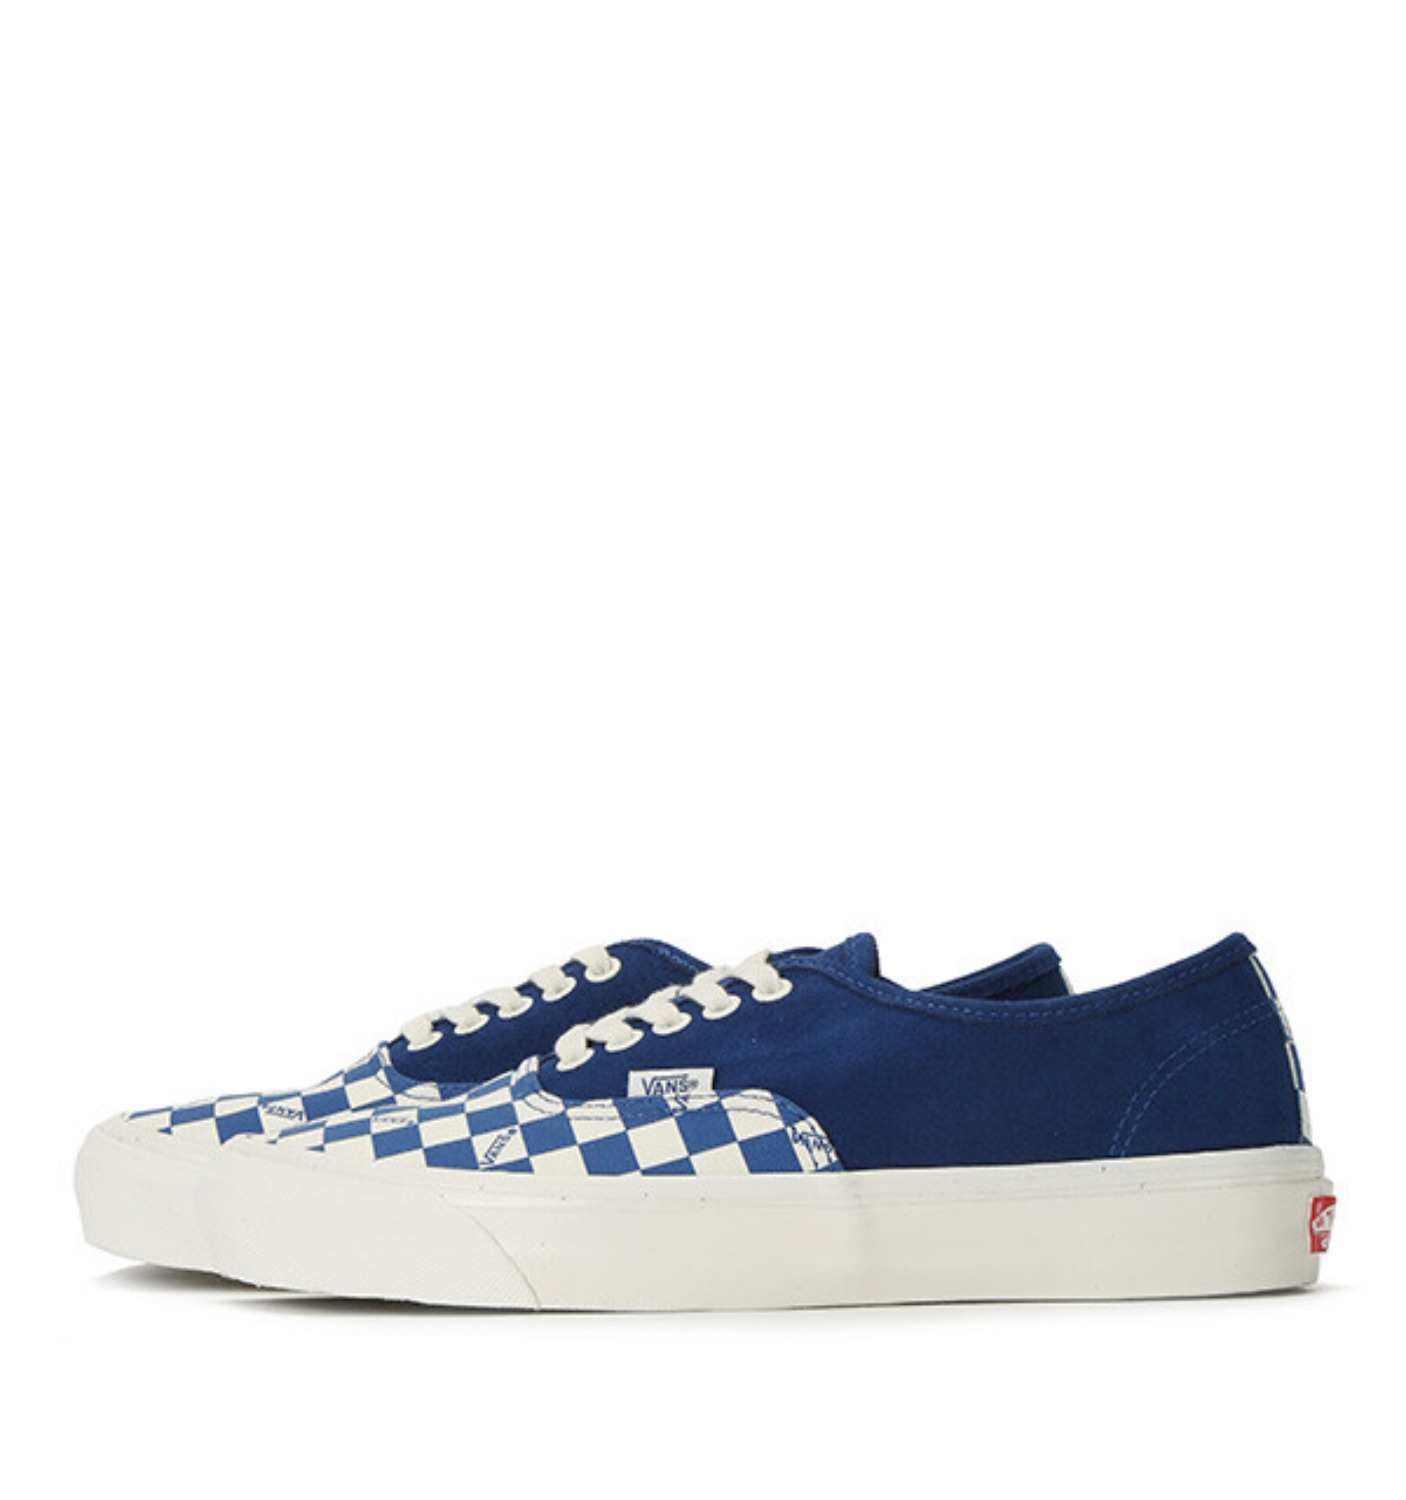 OG AUTHENTIC LX(SUEDE/CANVAS) TRUE BLUE/CHECKERBOARD